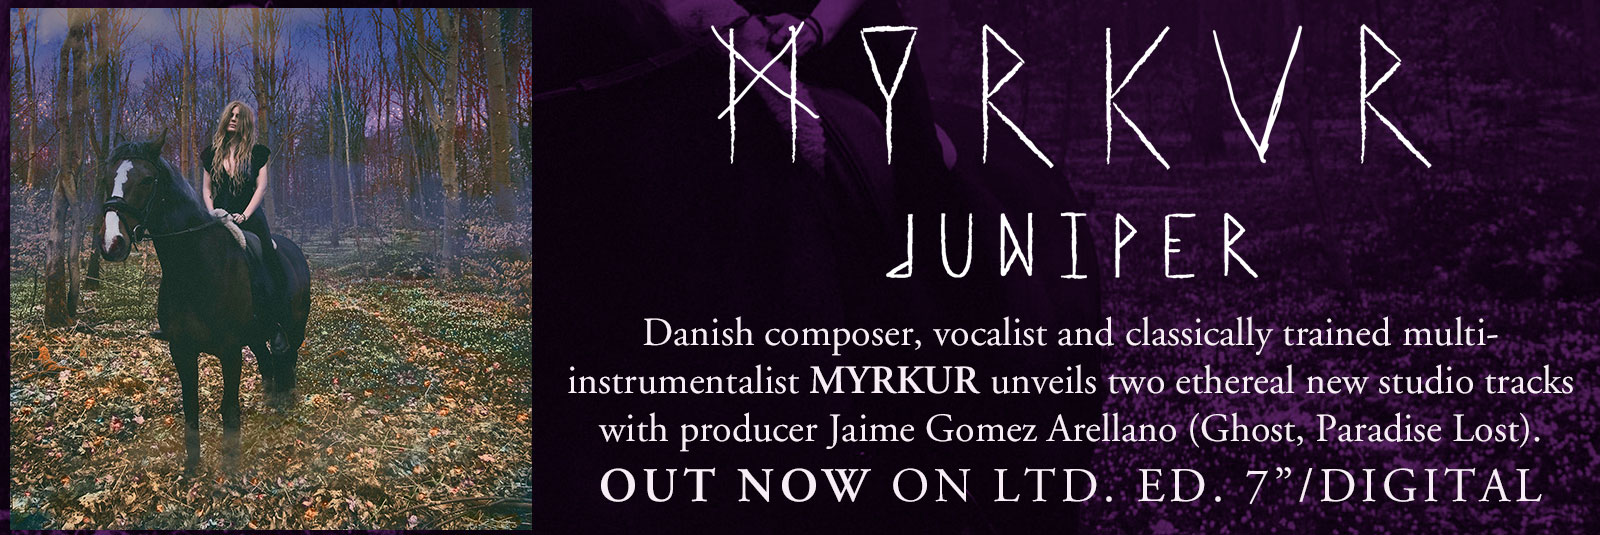 myrkur-juniper-folk-relapse-records-out-now